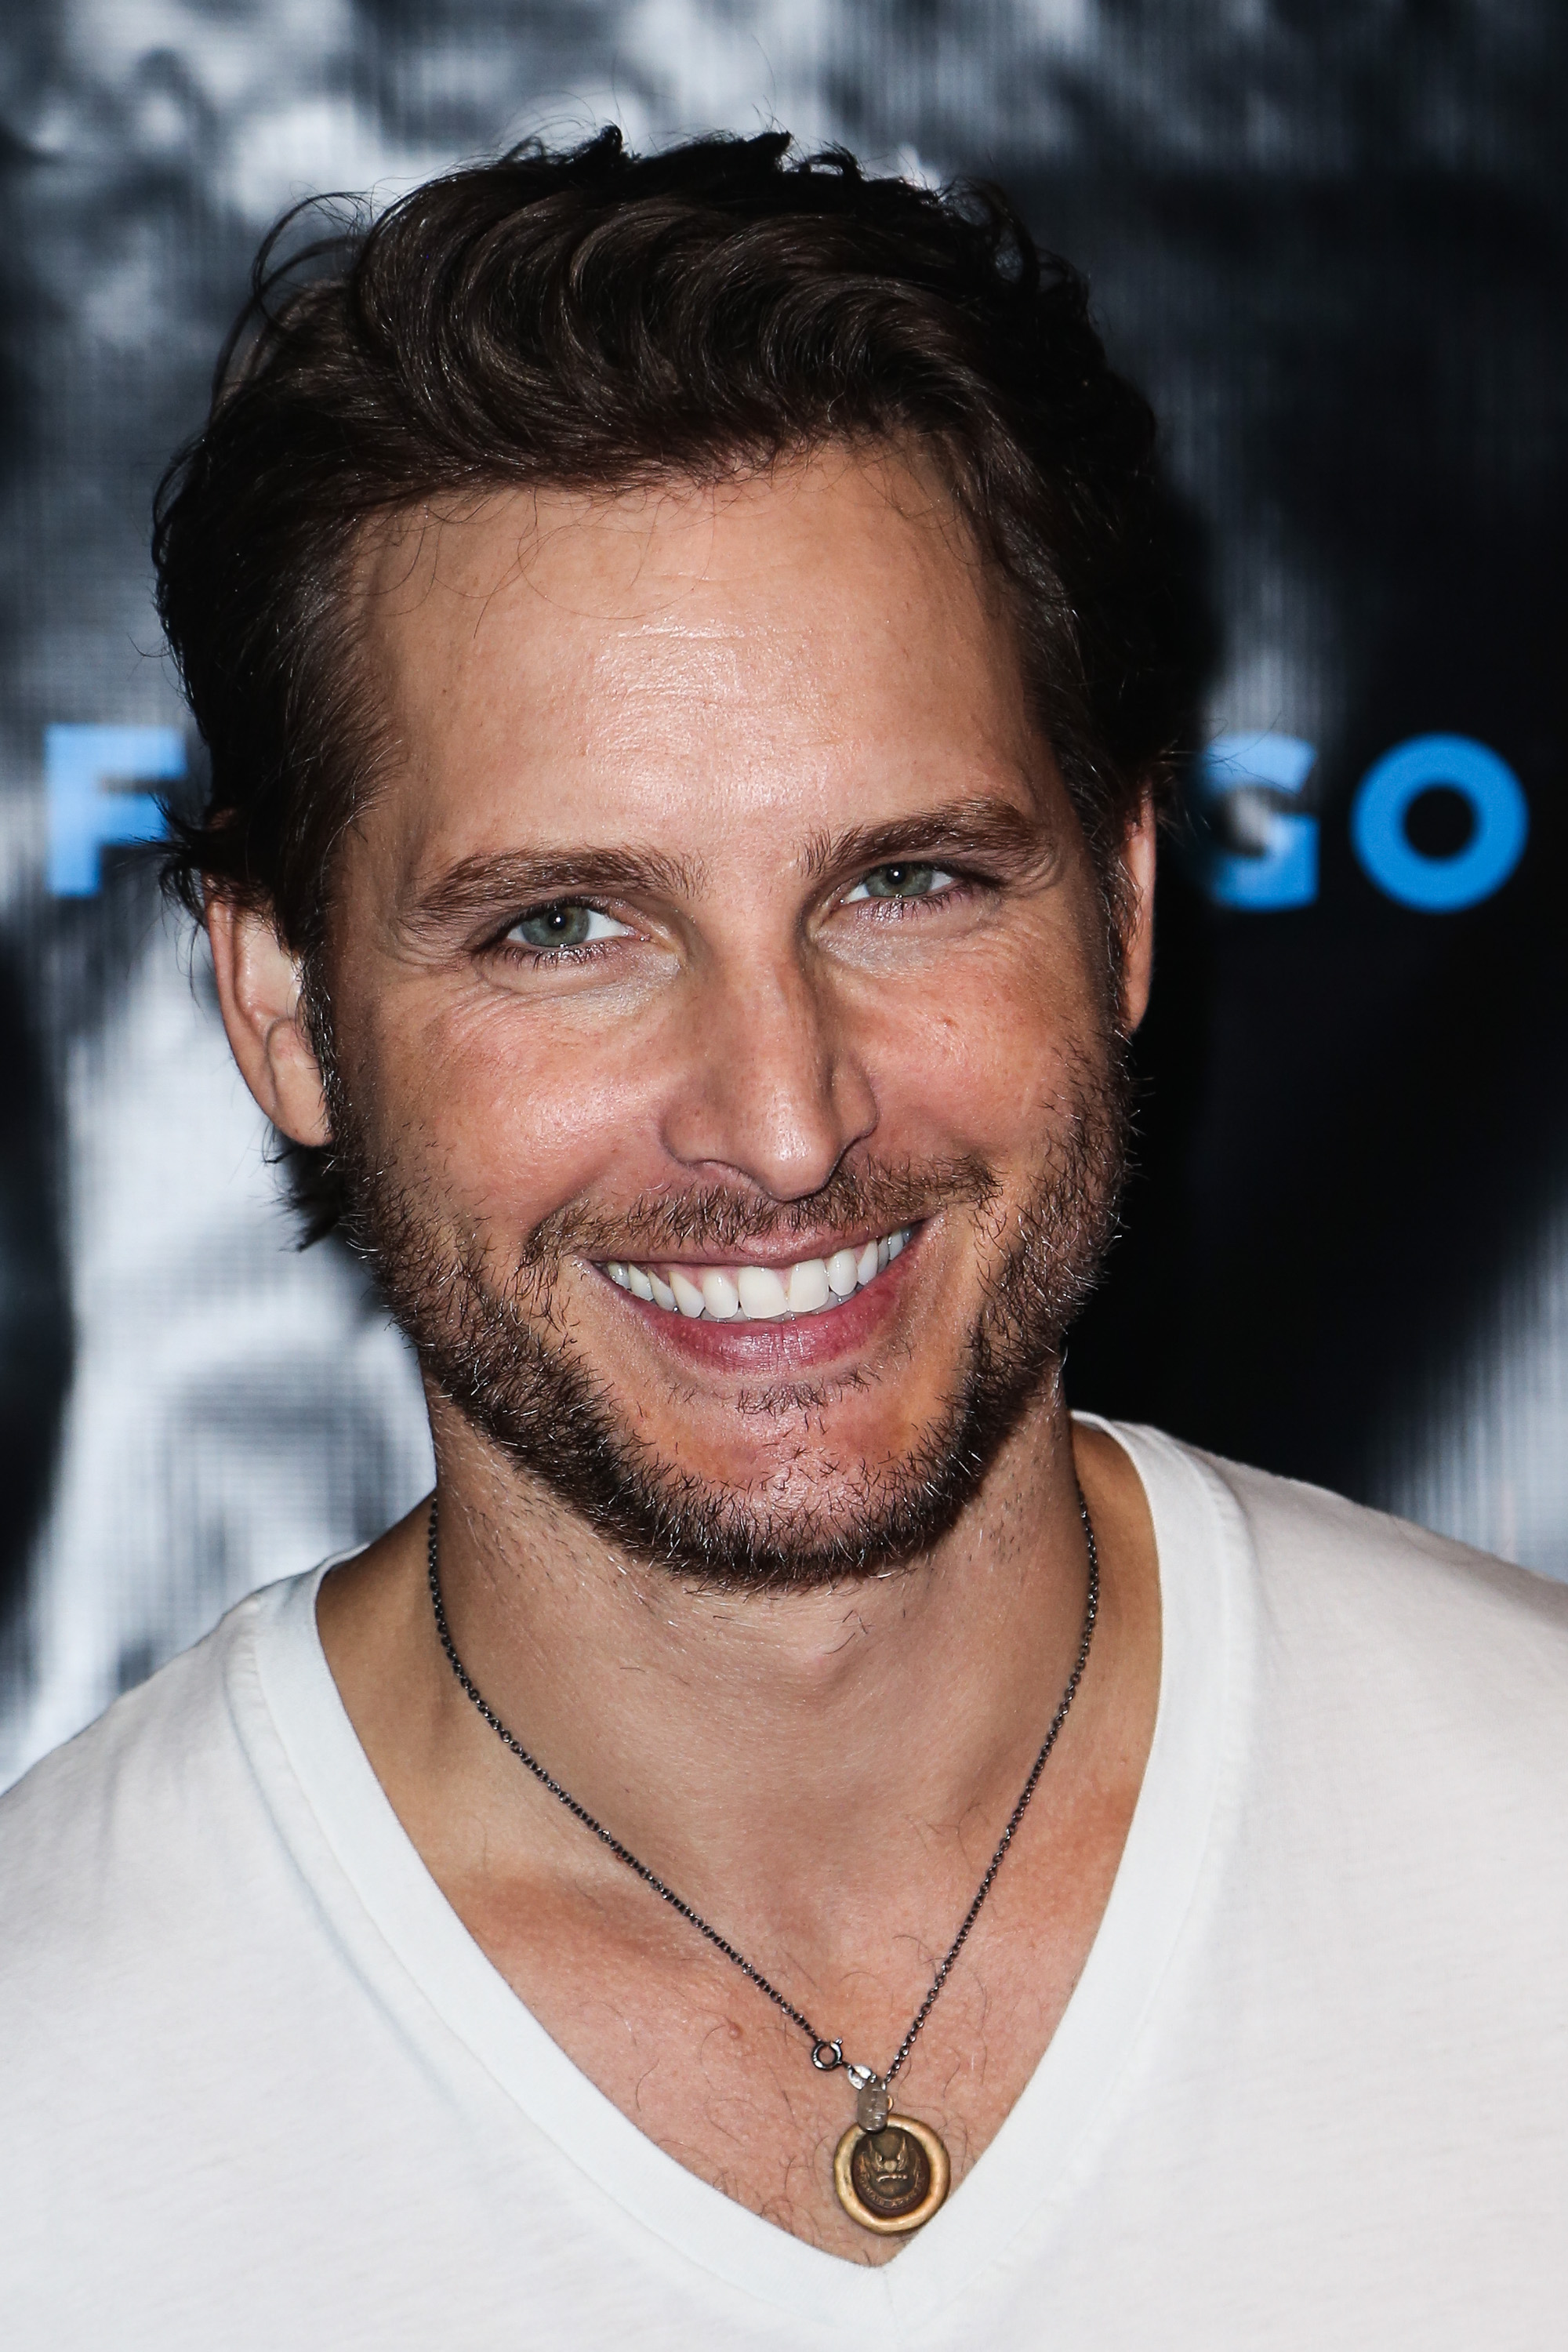 Peter Facinelli looked happy to attend the Breaking Dawn Part 2 party at Comic-Con.